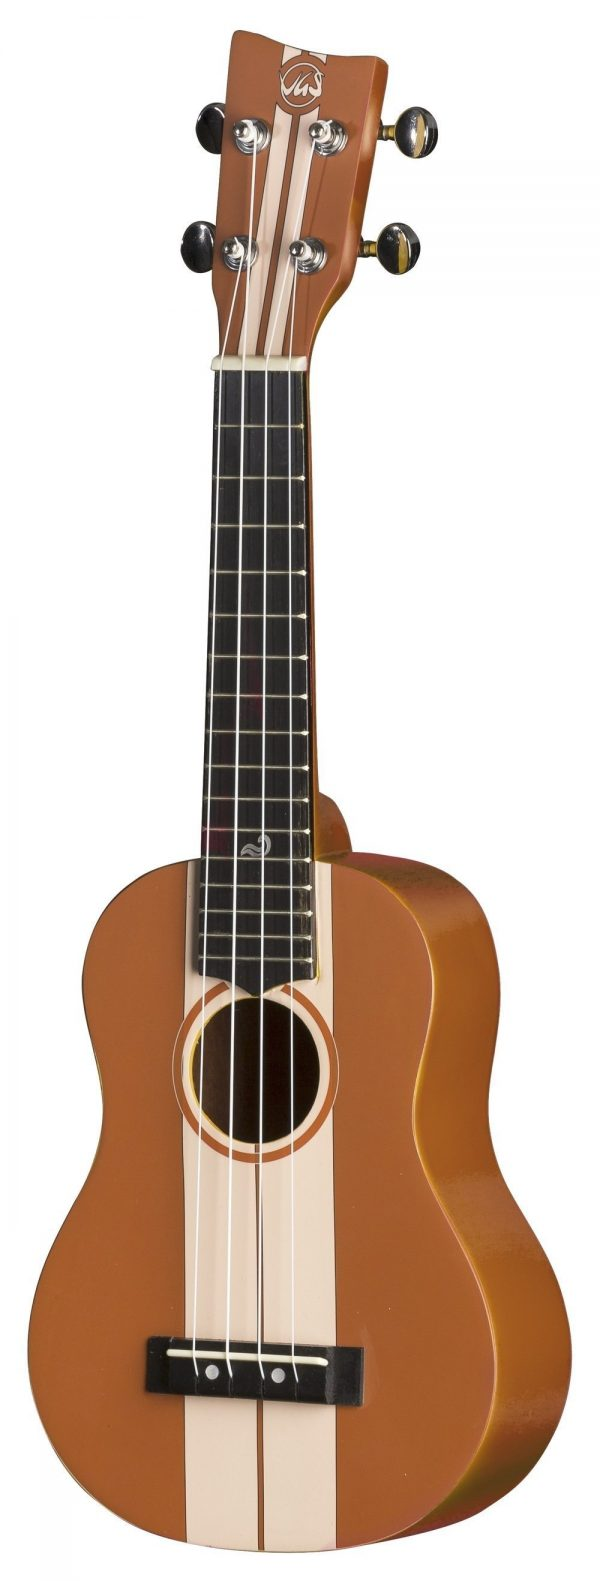 Sopran Ukulele Manoa W-SO-OR Sopran